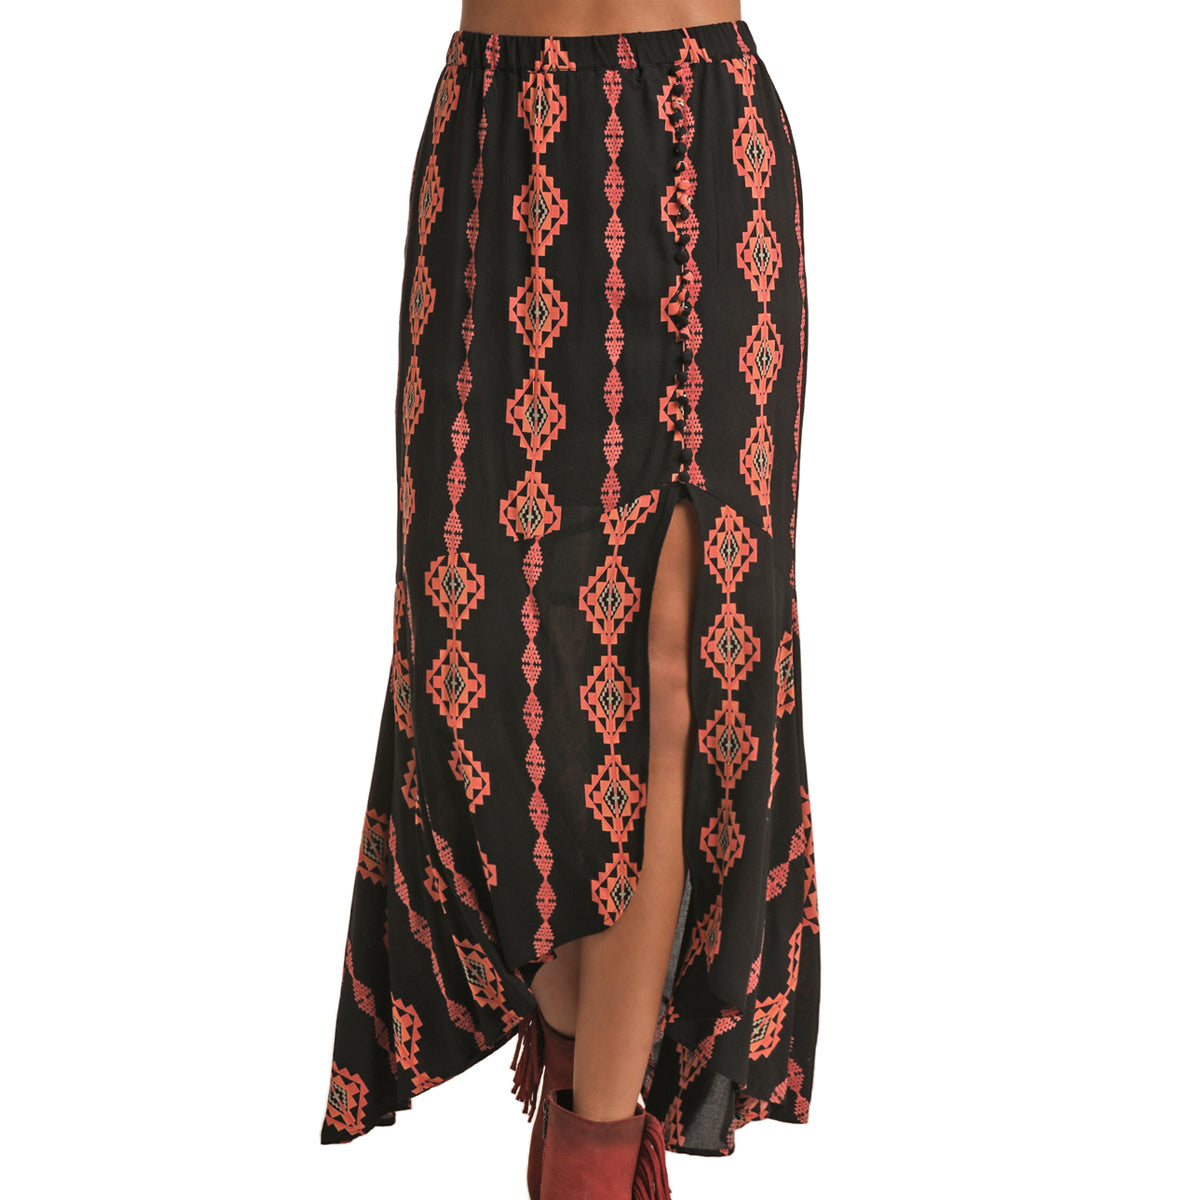 Panhandle Juniors High Low Maxi Skirt - Copper